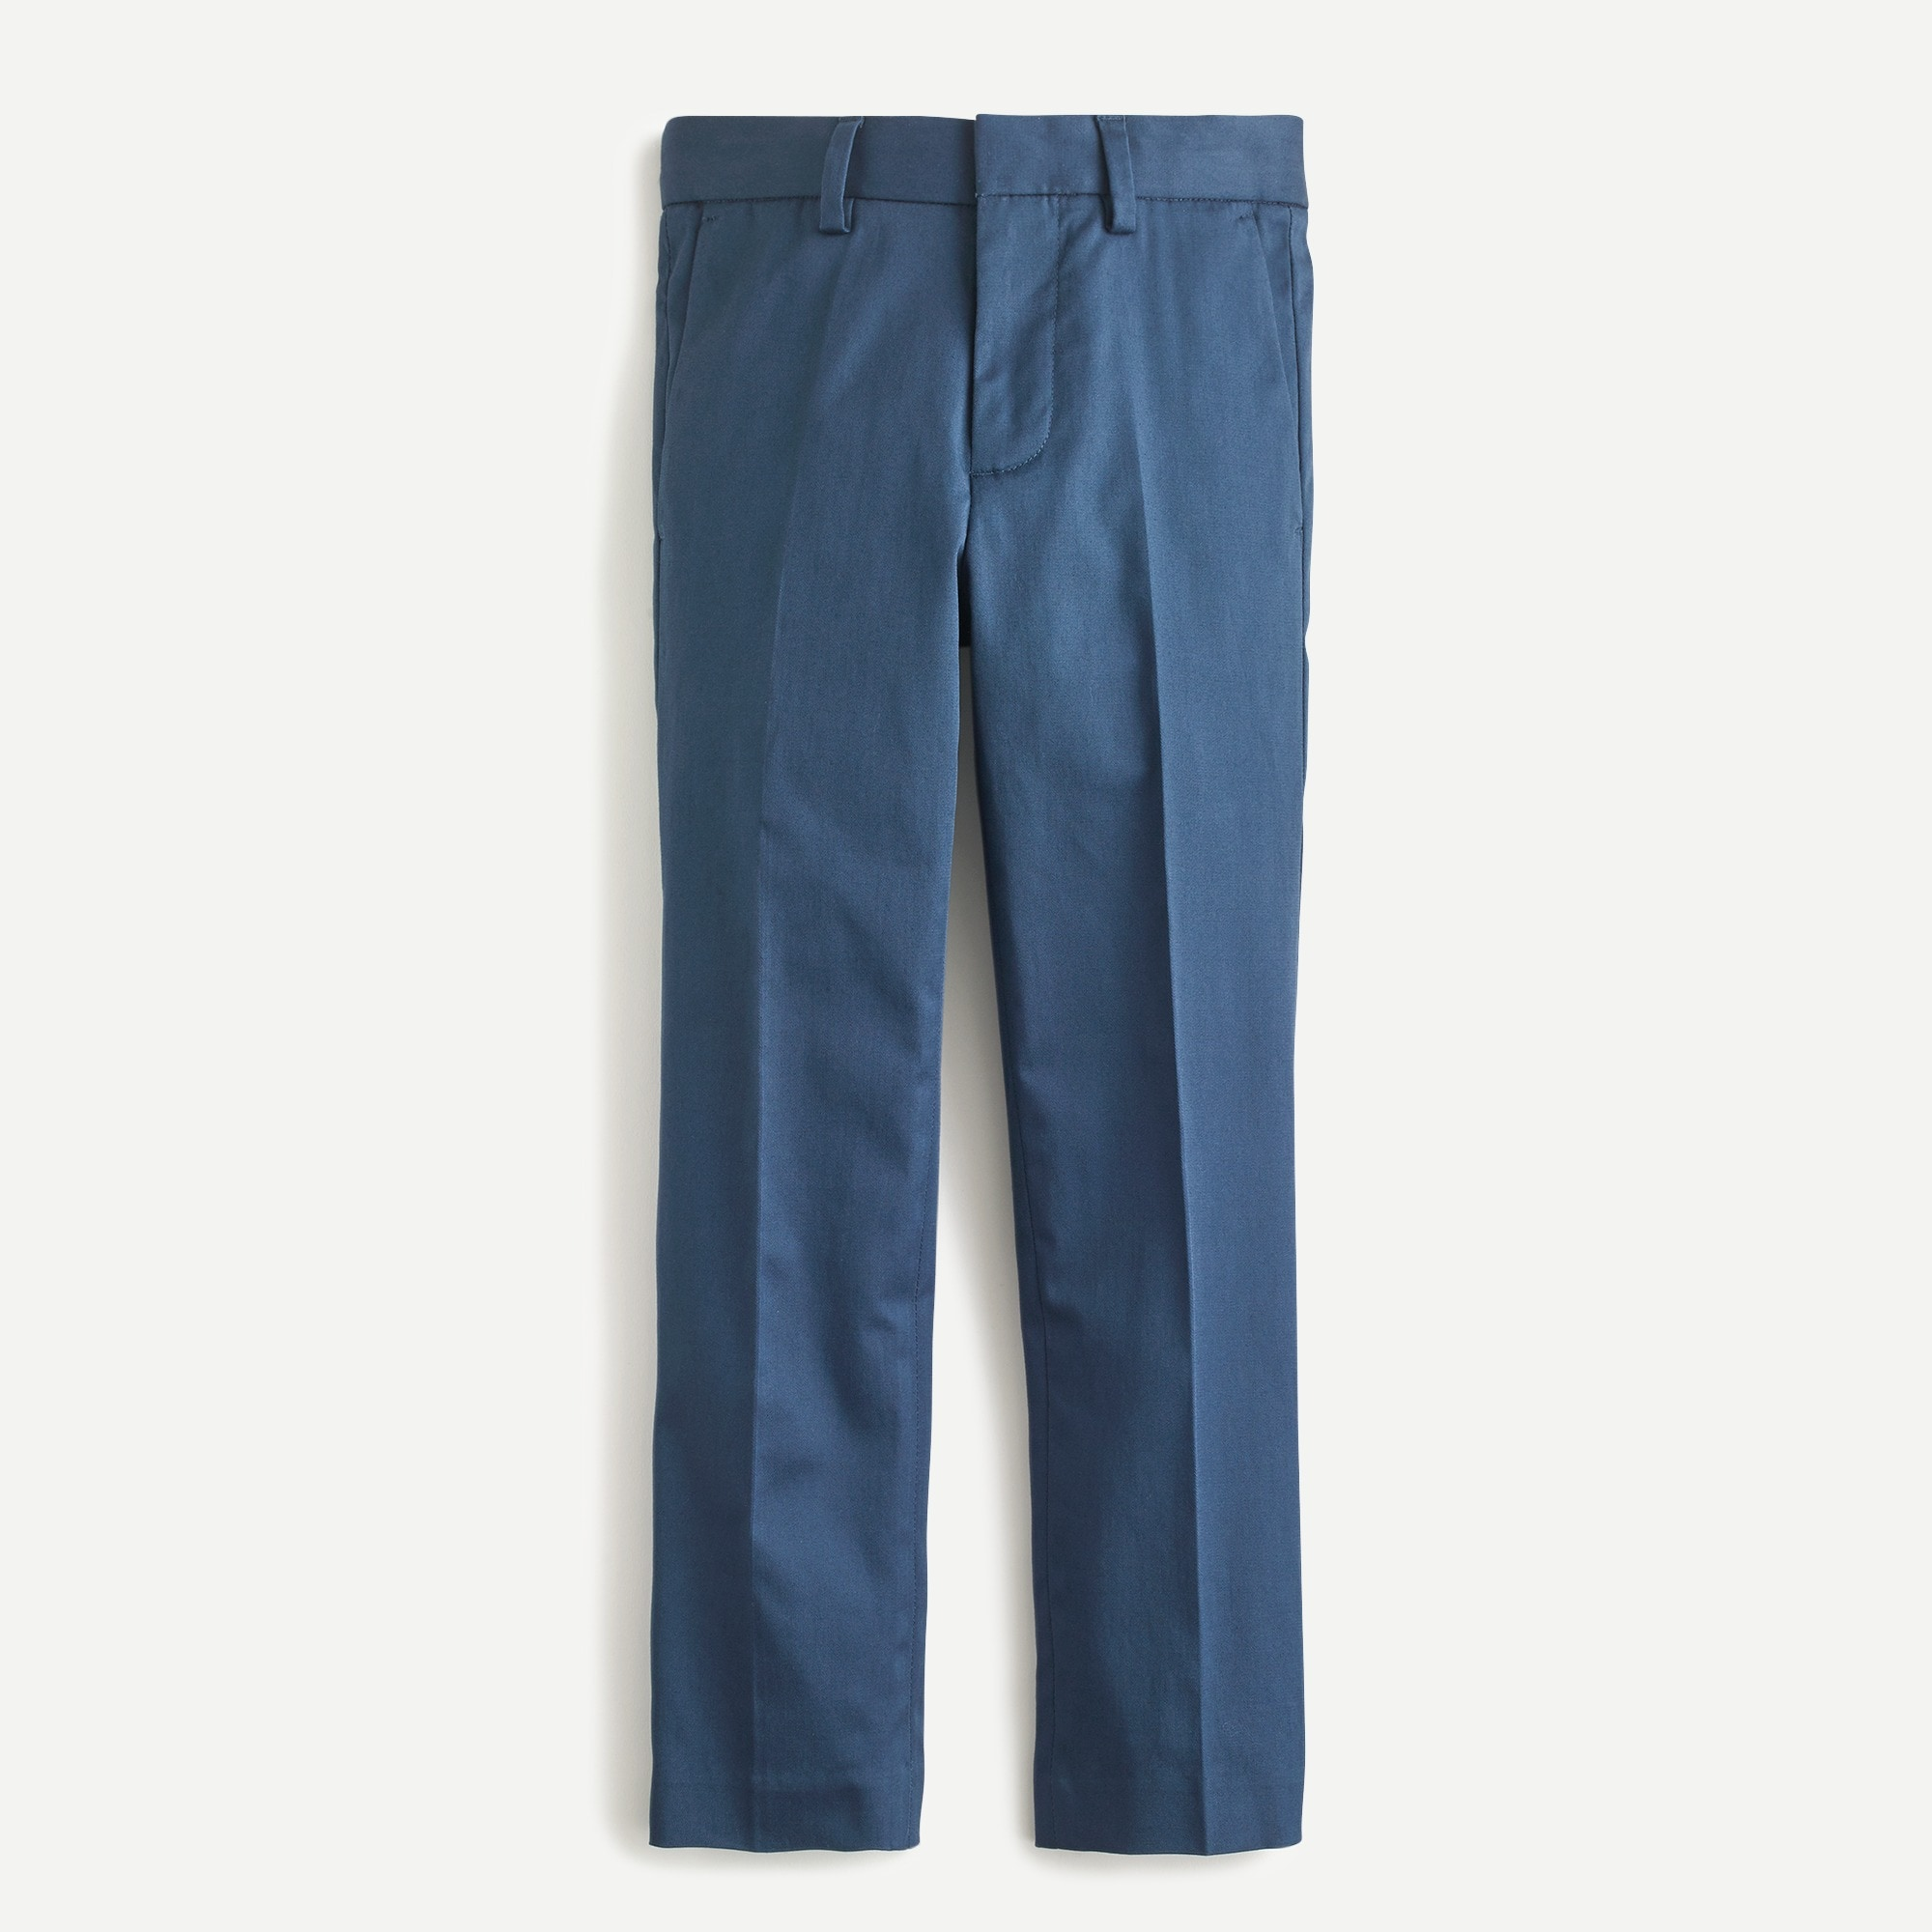 Boys' Ludlow suit pant in stretch chino